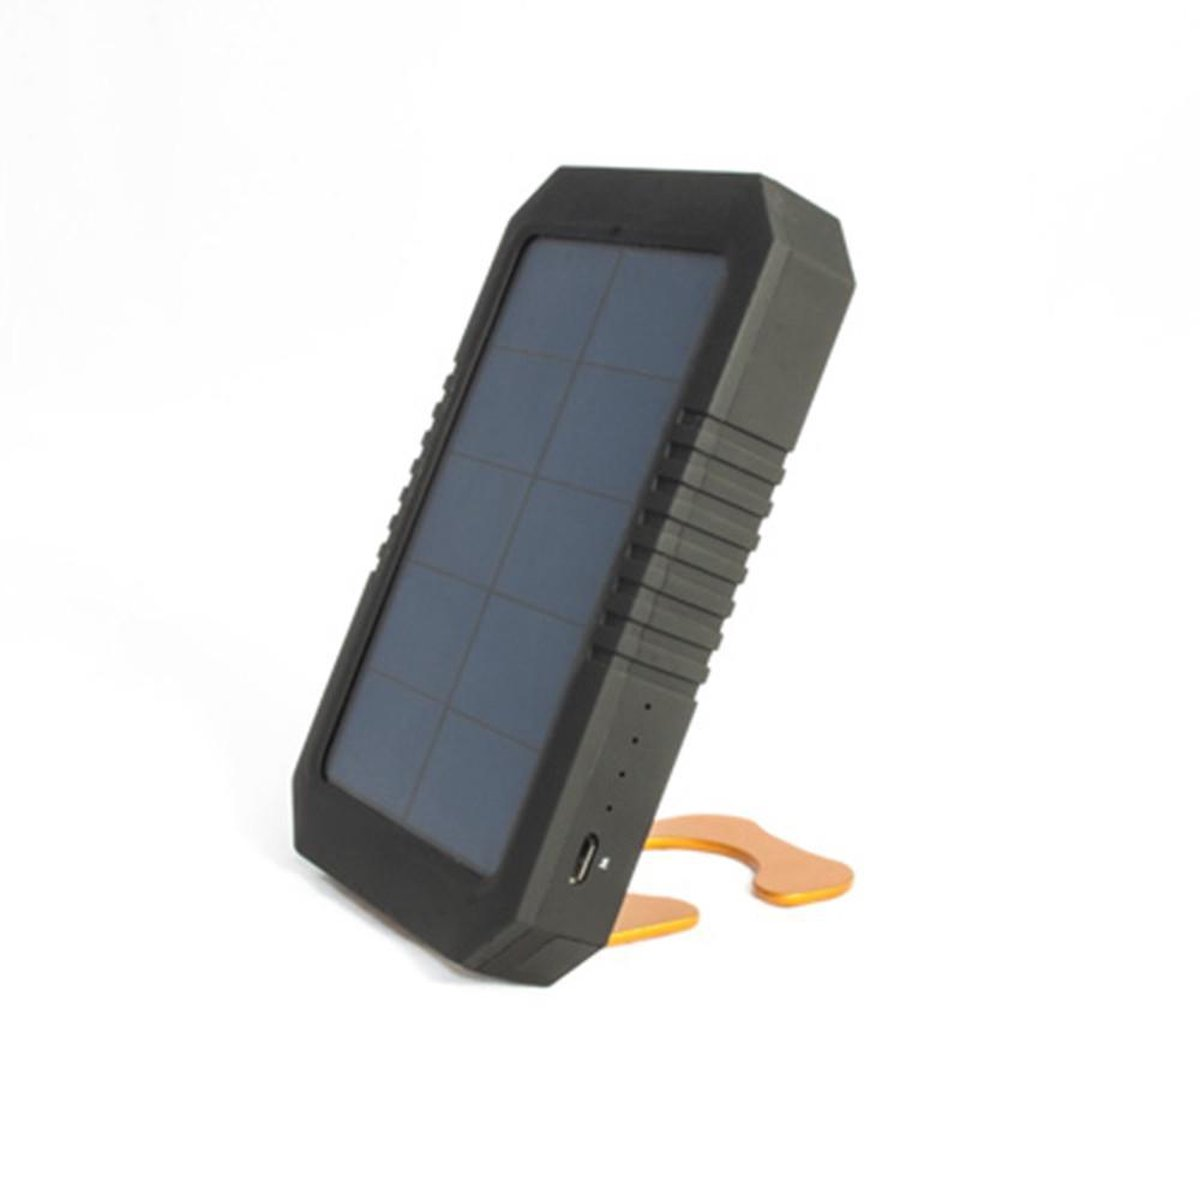 Xtorm Magma solar charger - Mobiele solar oplader met Led / Back-up accu - 2000 mAh - AM115